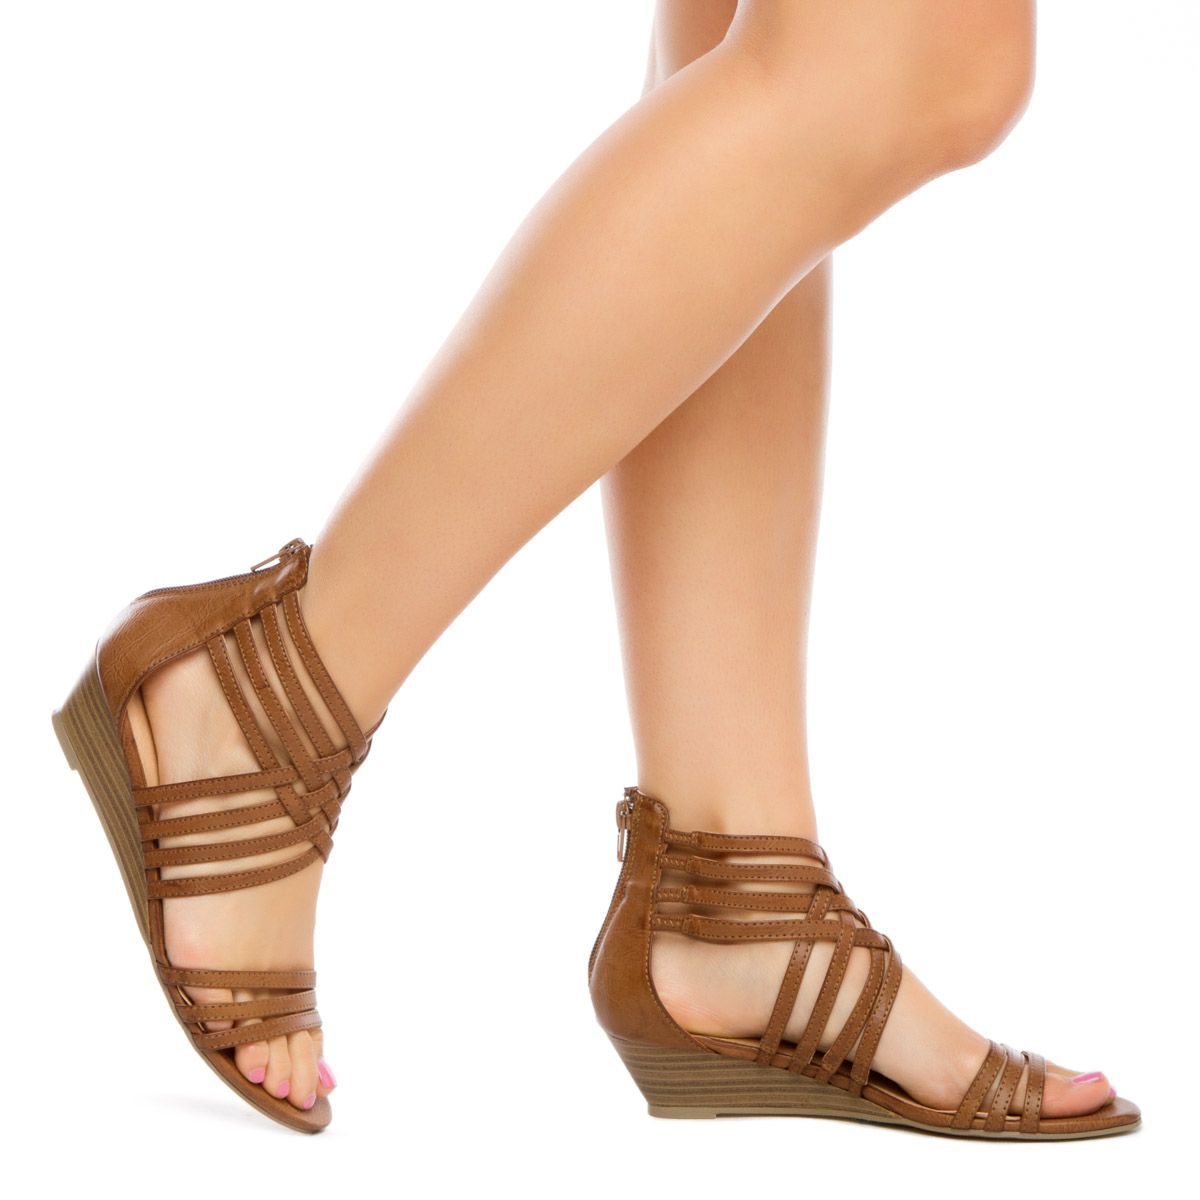 Boho chic sandal gets a subtle boost from a stacked demi